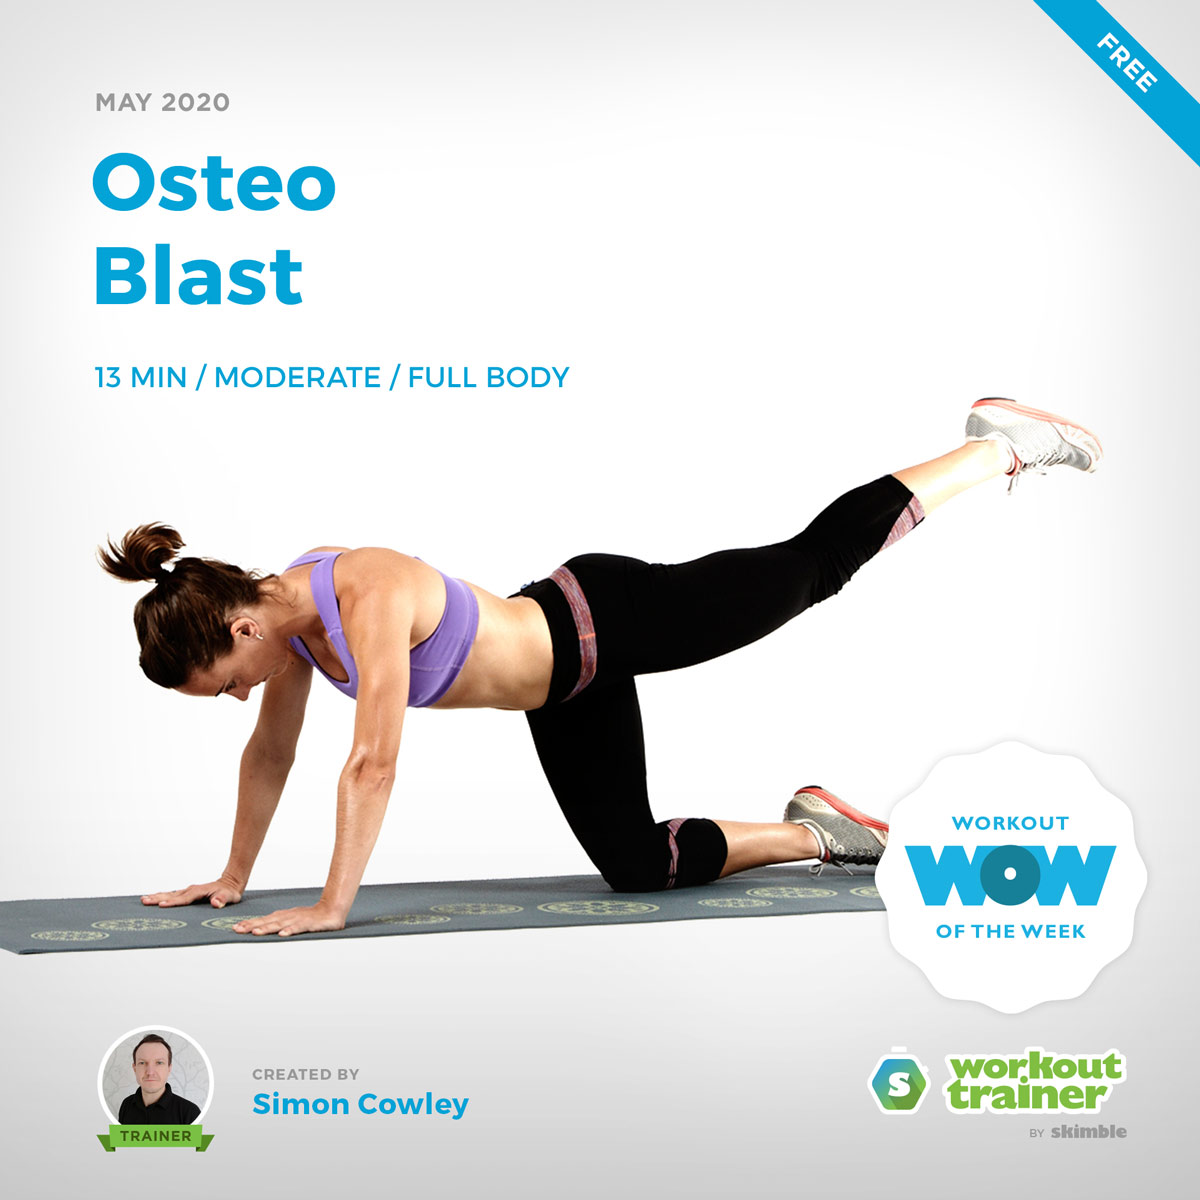 Workout Trainer by Skimble: Free Workout of the Week: Osteo Blast by Simon Cowley